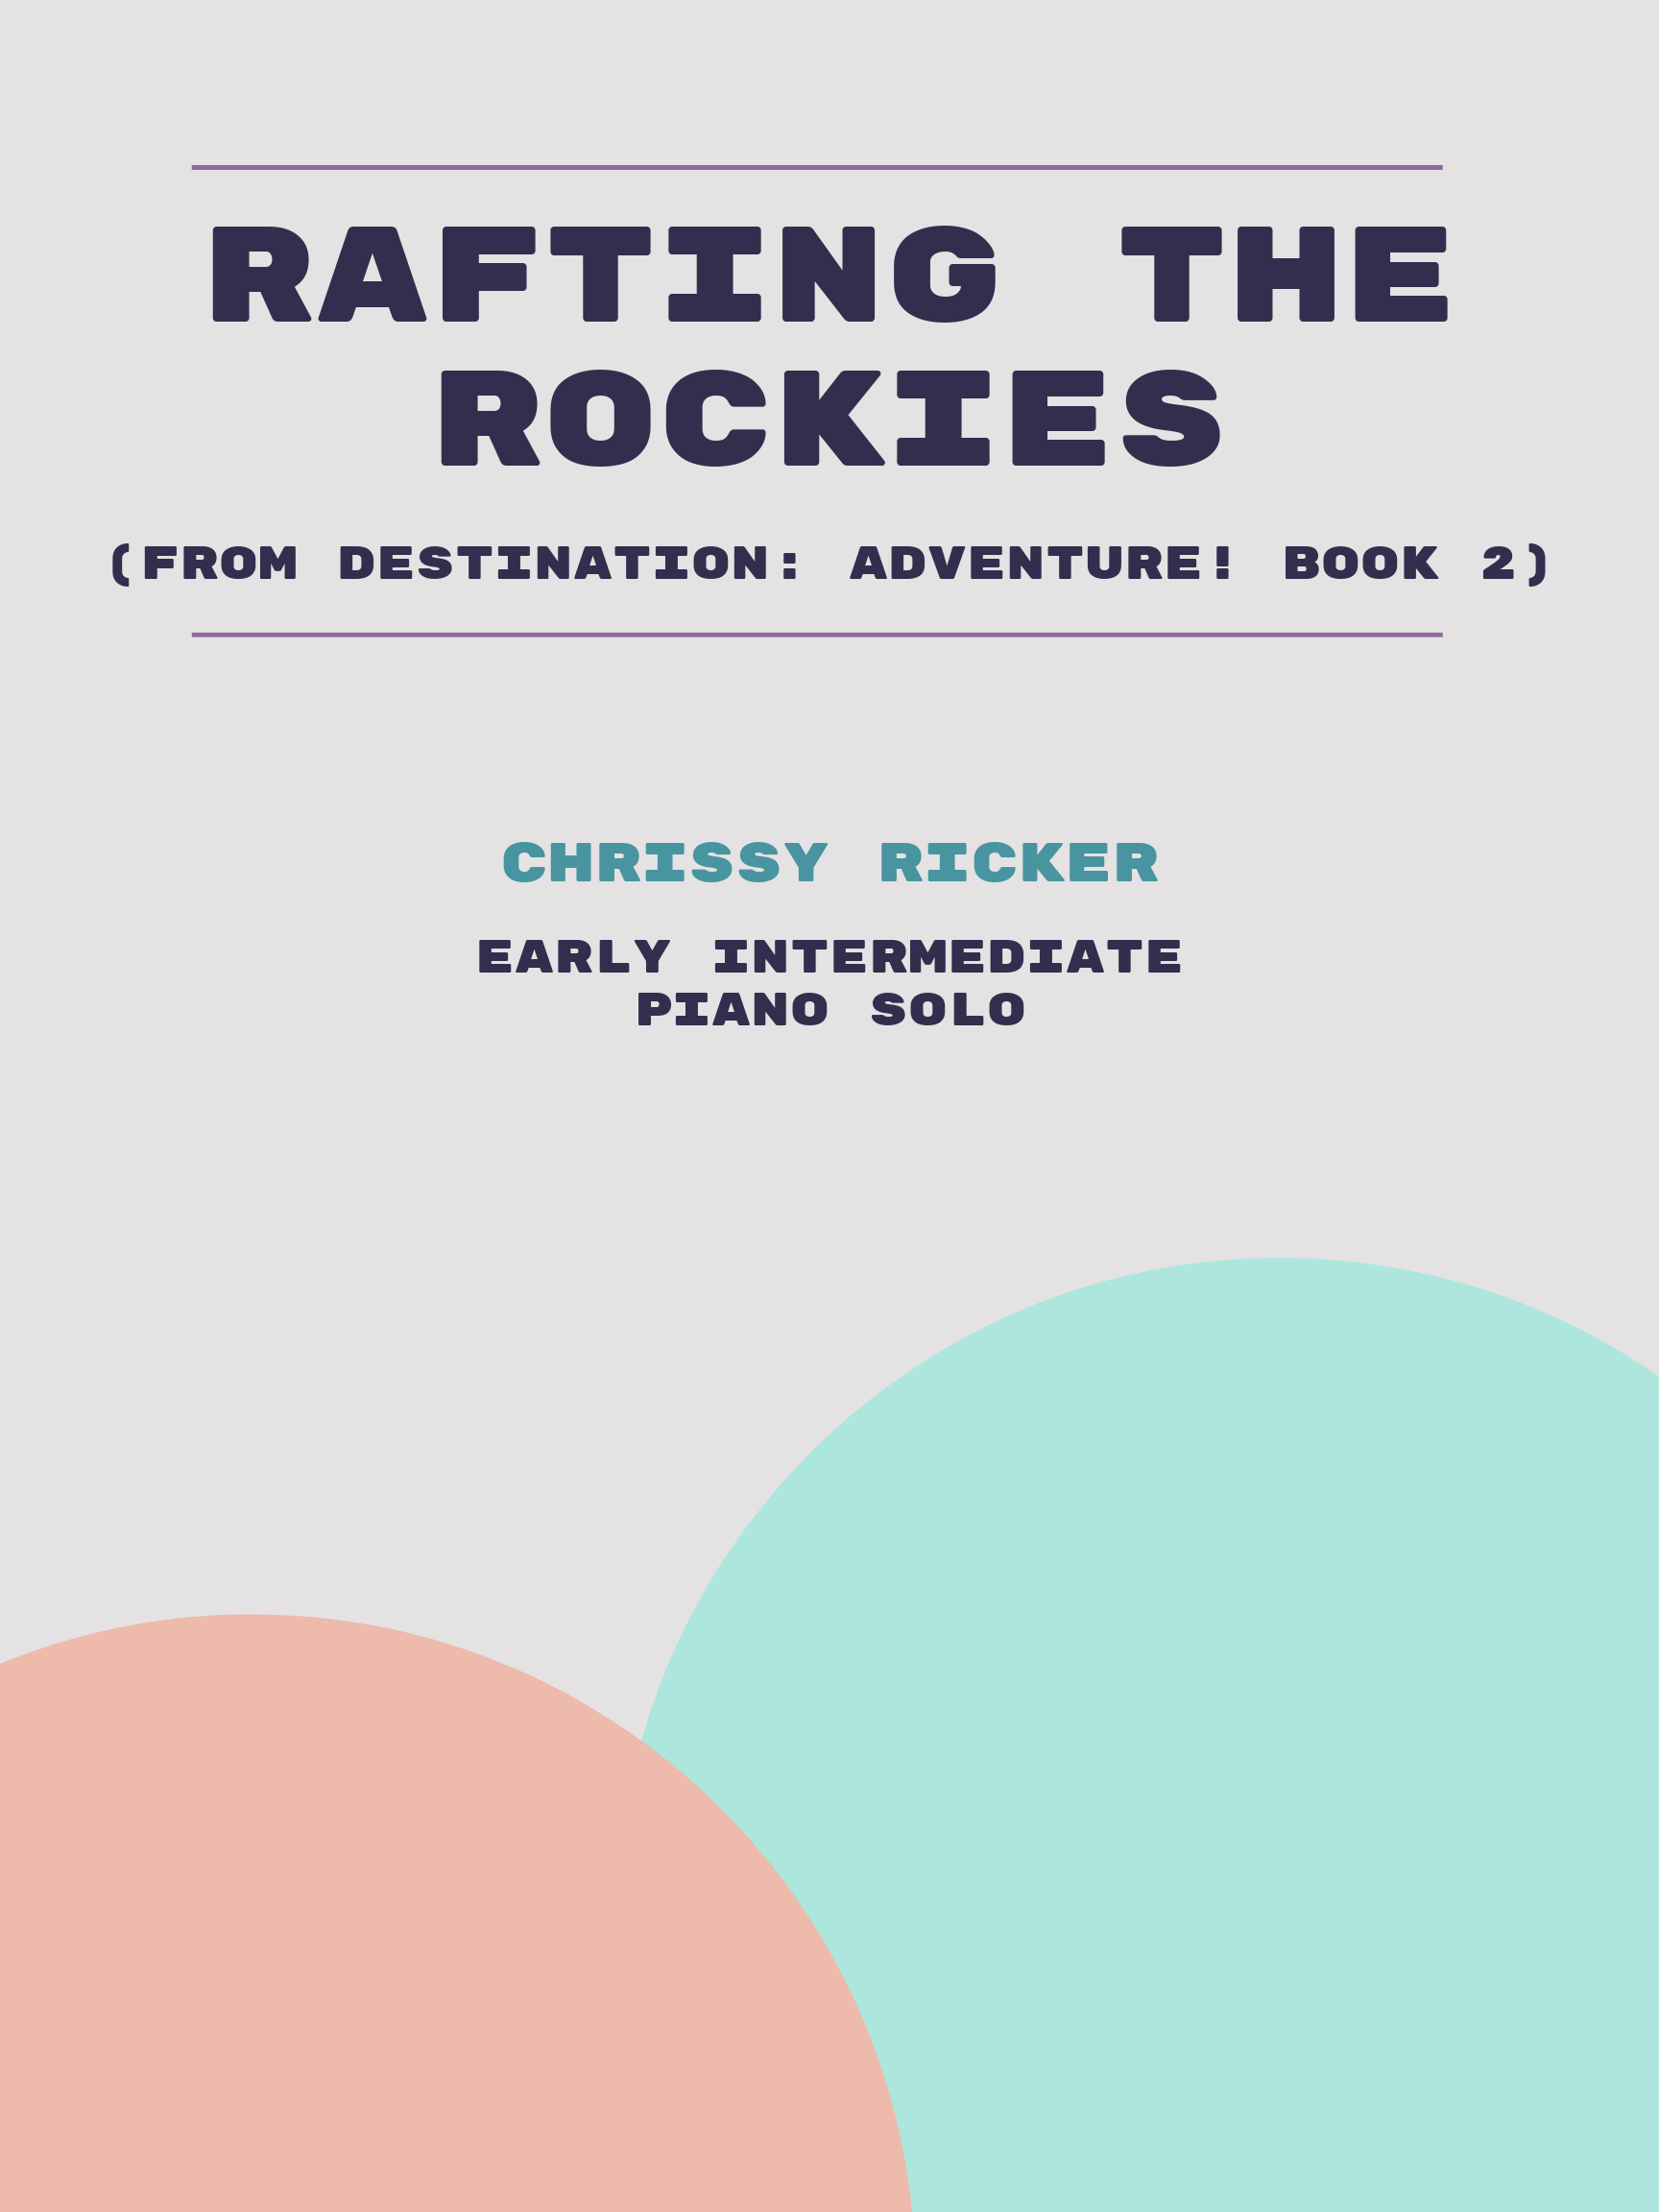 Rafting the Rockies by Chrissy Ricker